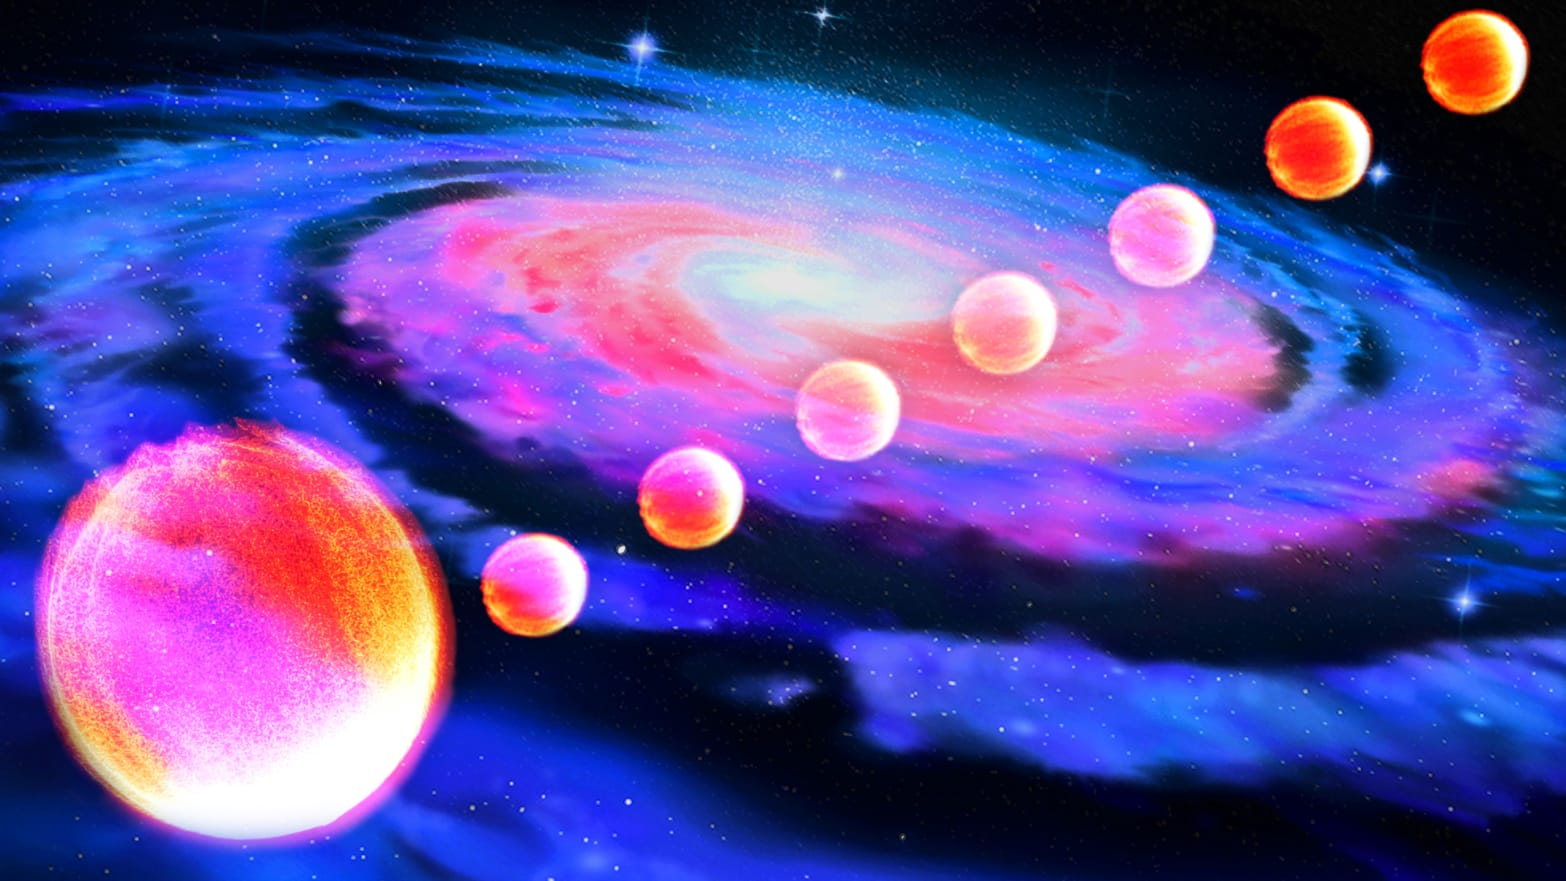 illustration of eight pinkish stars swirling in a milky way galaxy